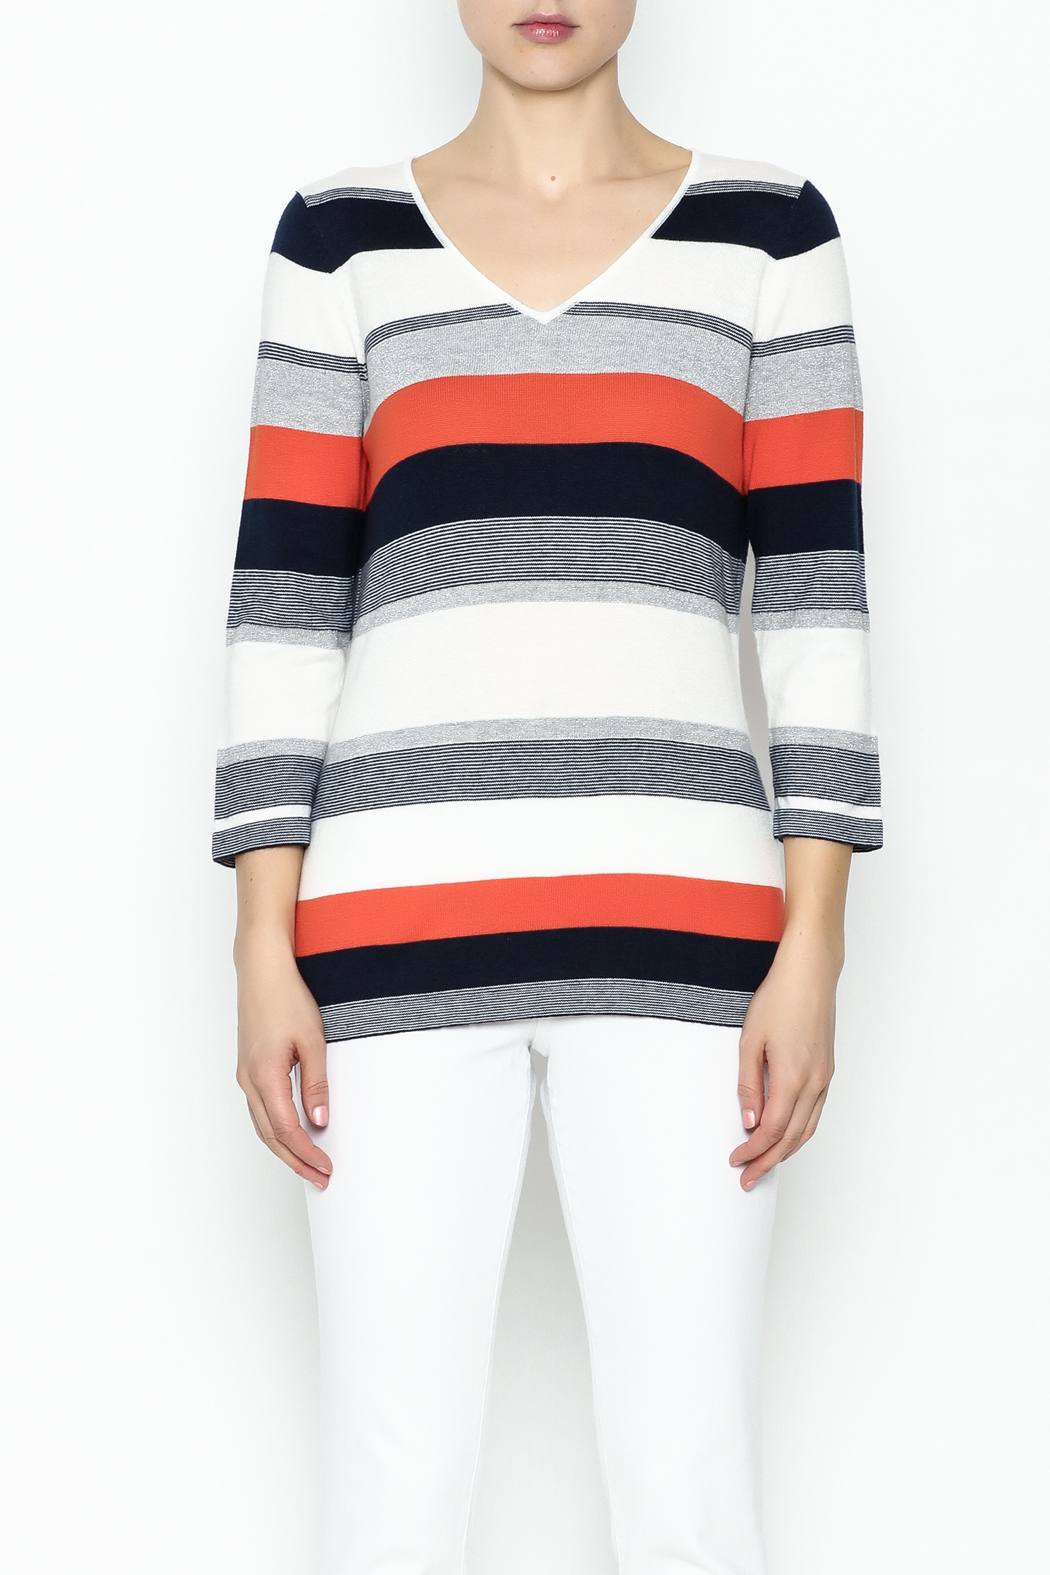 Conrad C Navy Stripes Sweater - Front Full Image